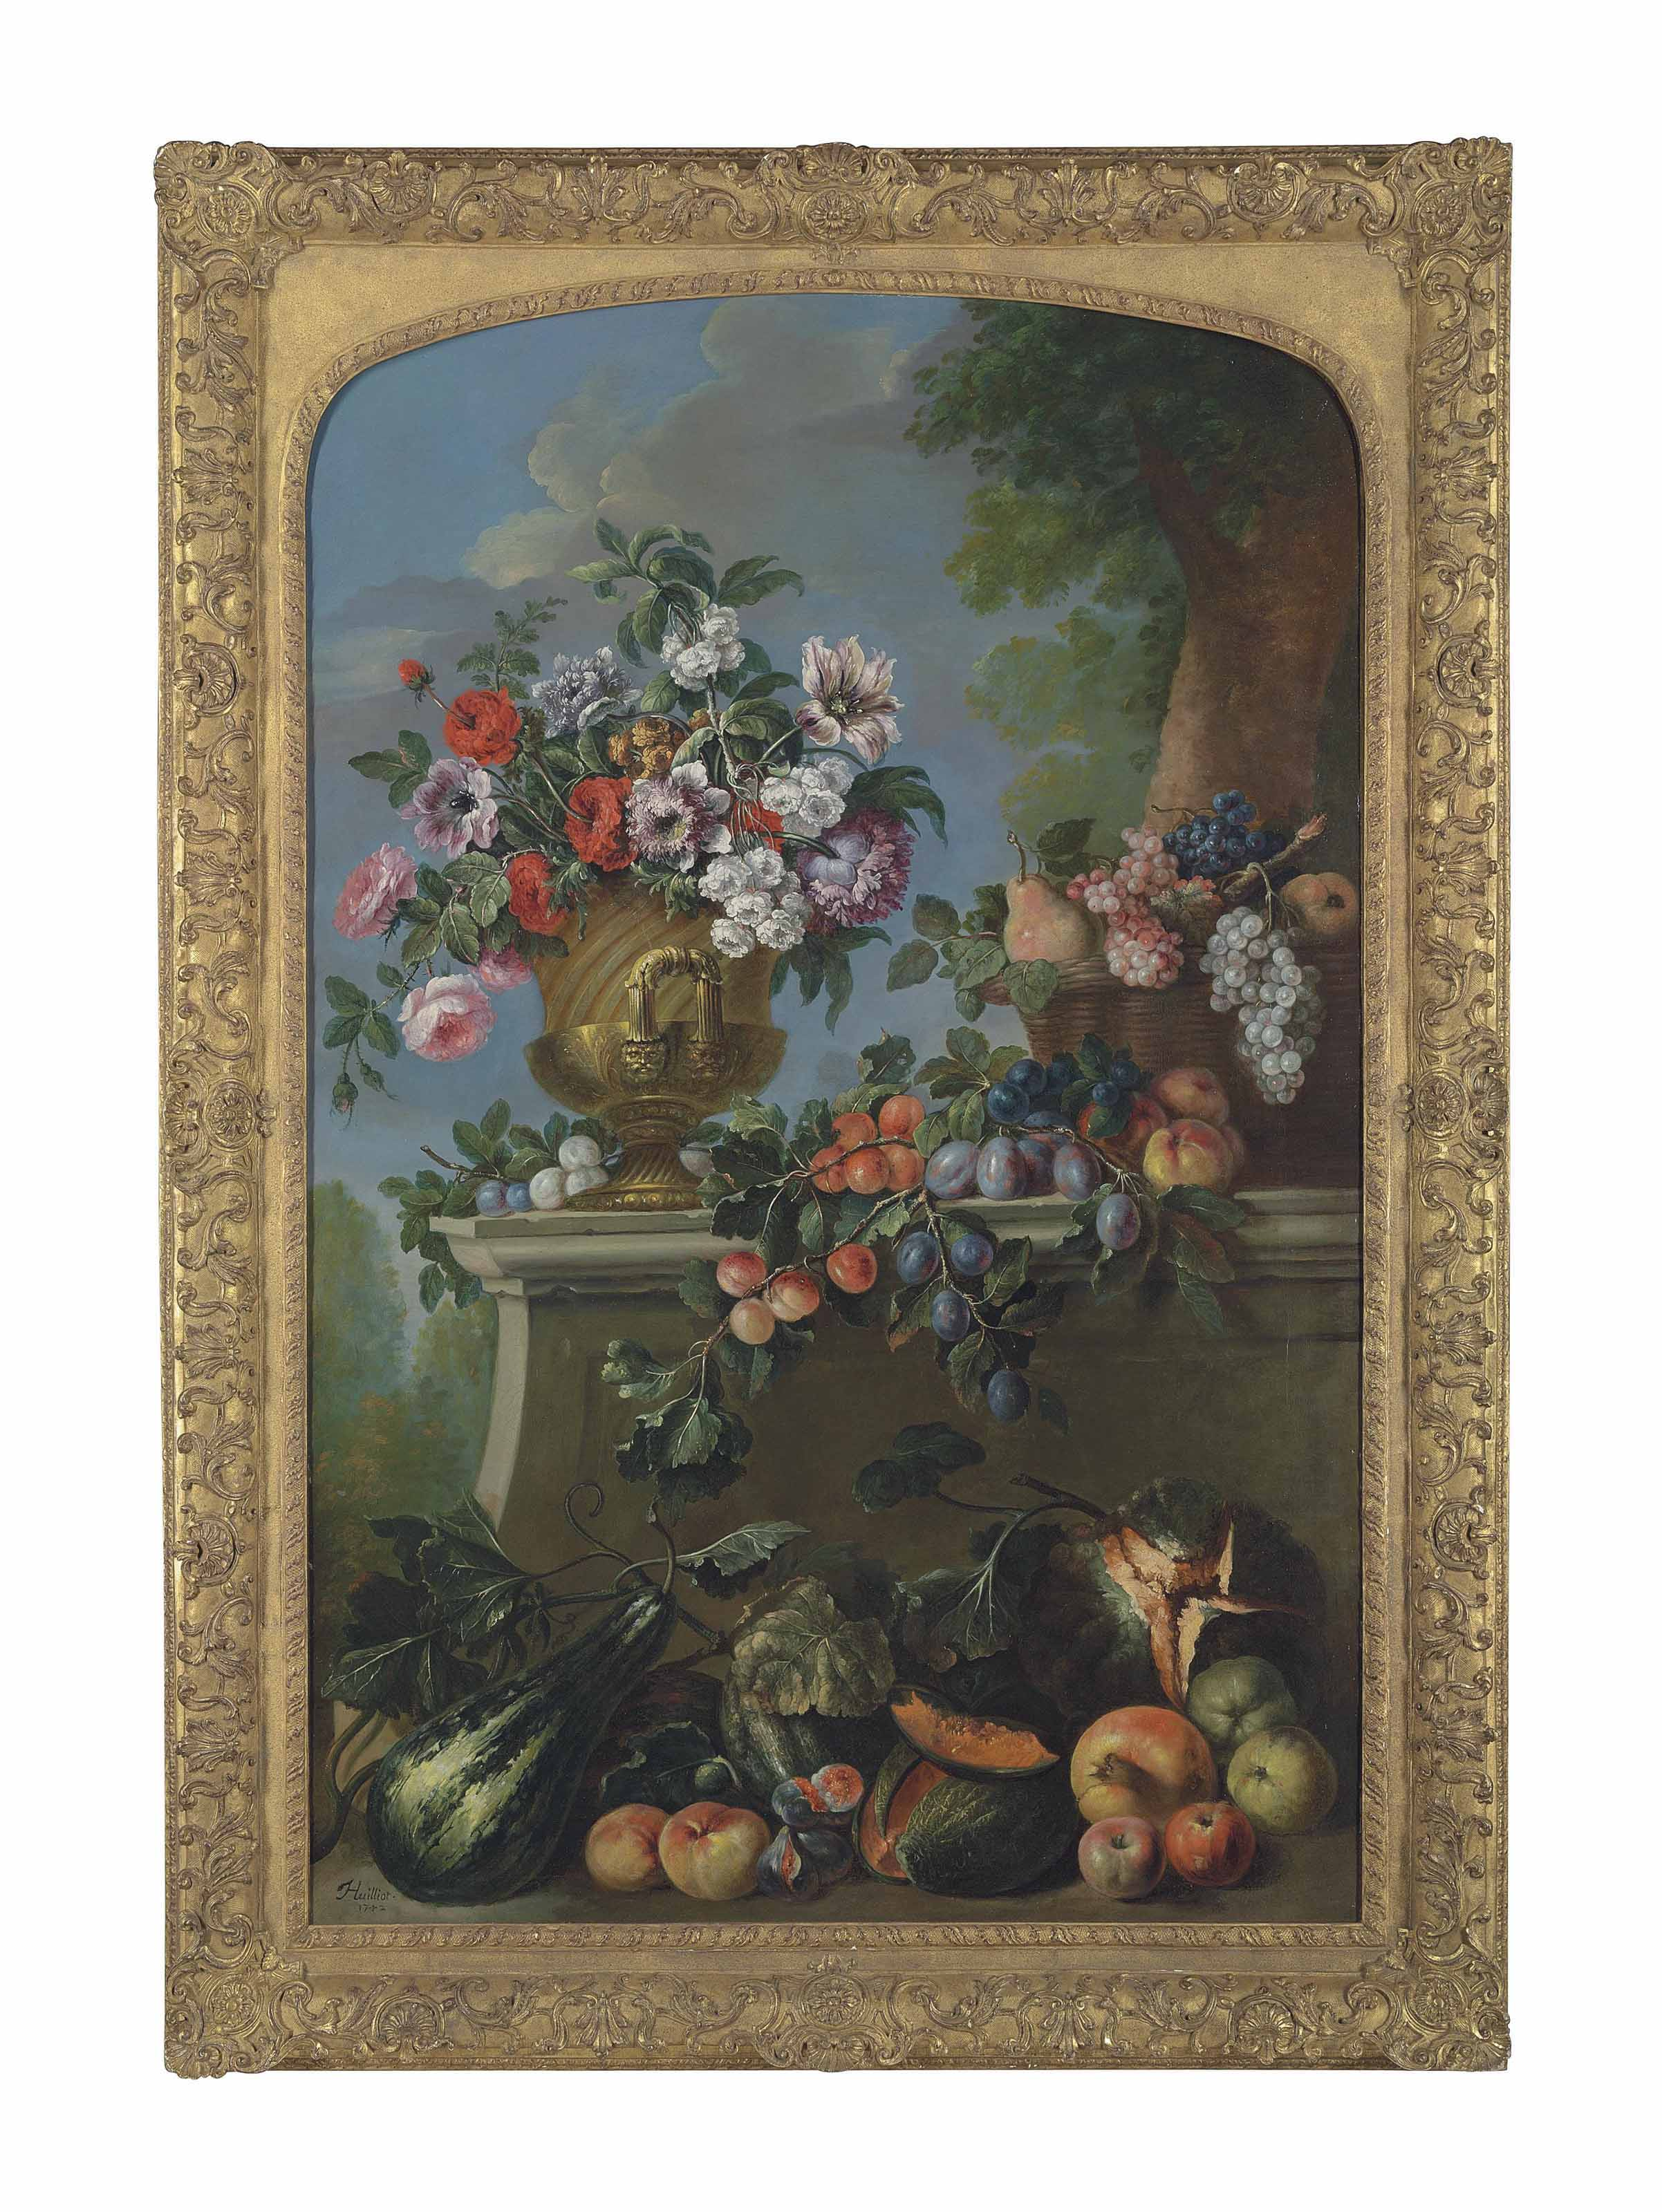 Roses, peonies and other flowers in an urn, grapes and peaches in a basket on a ledge, with further overflowing fruit